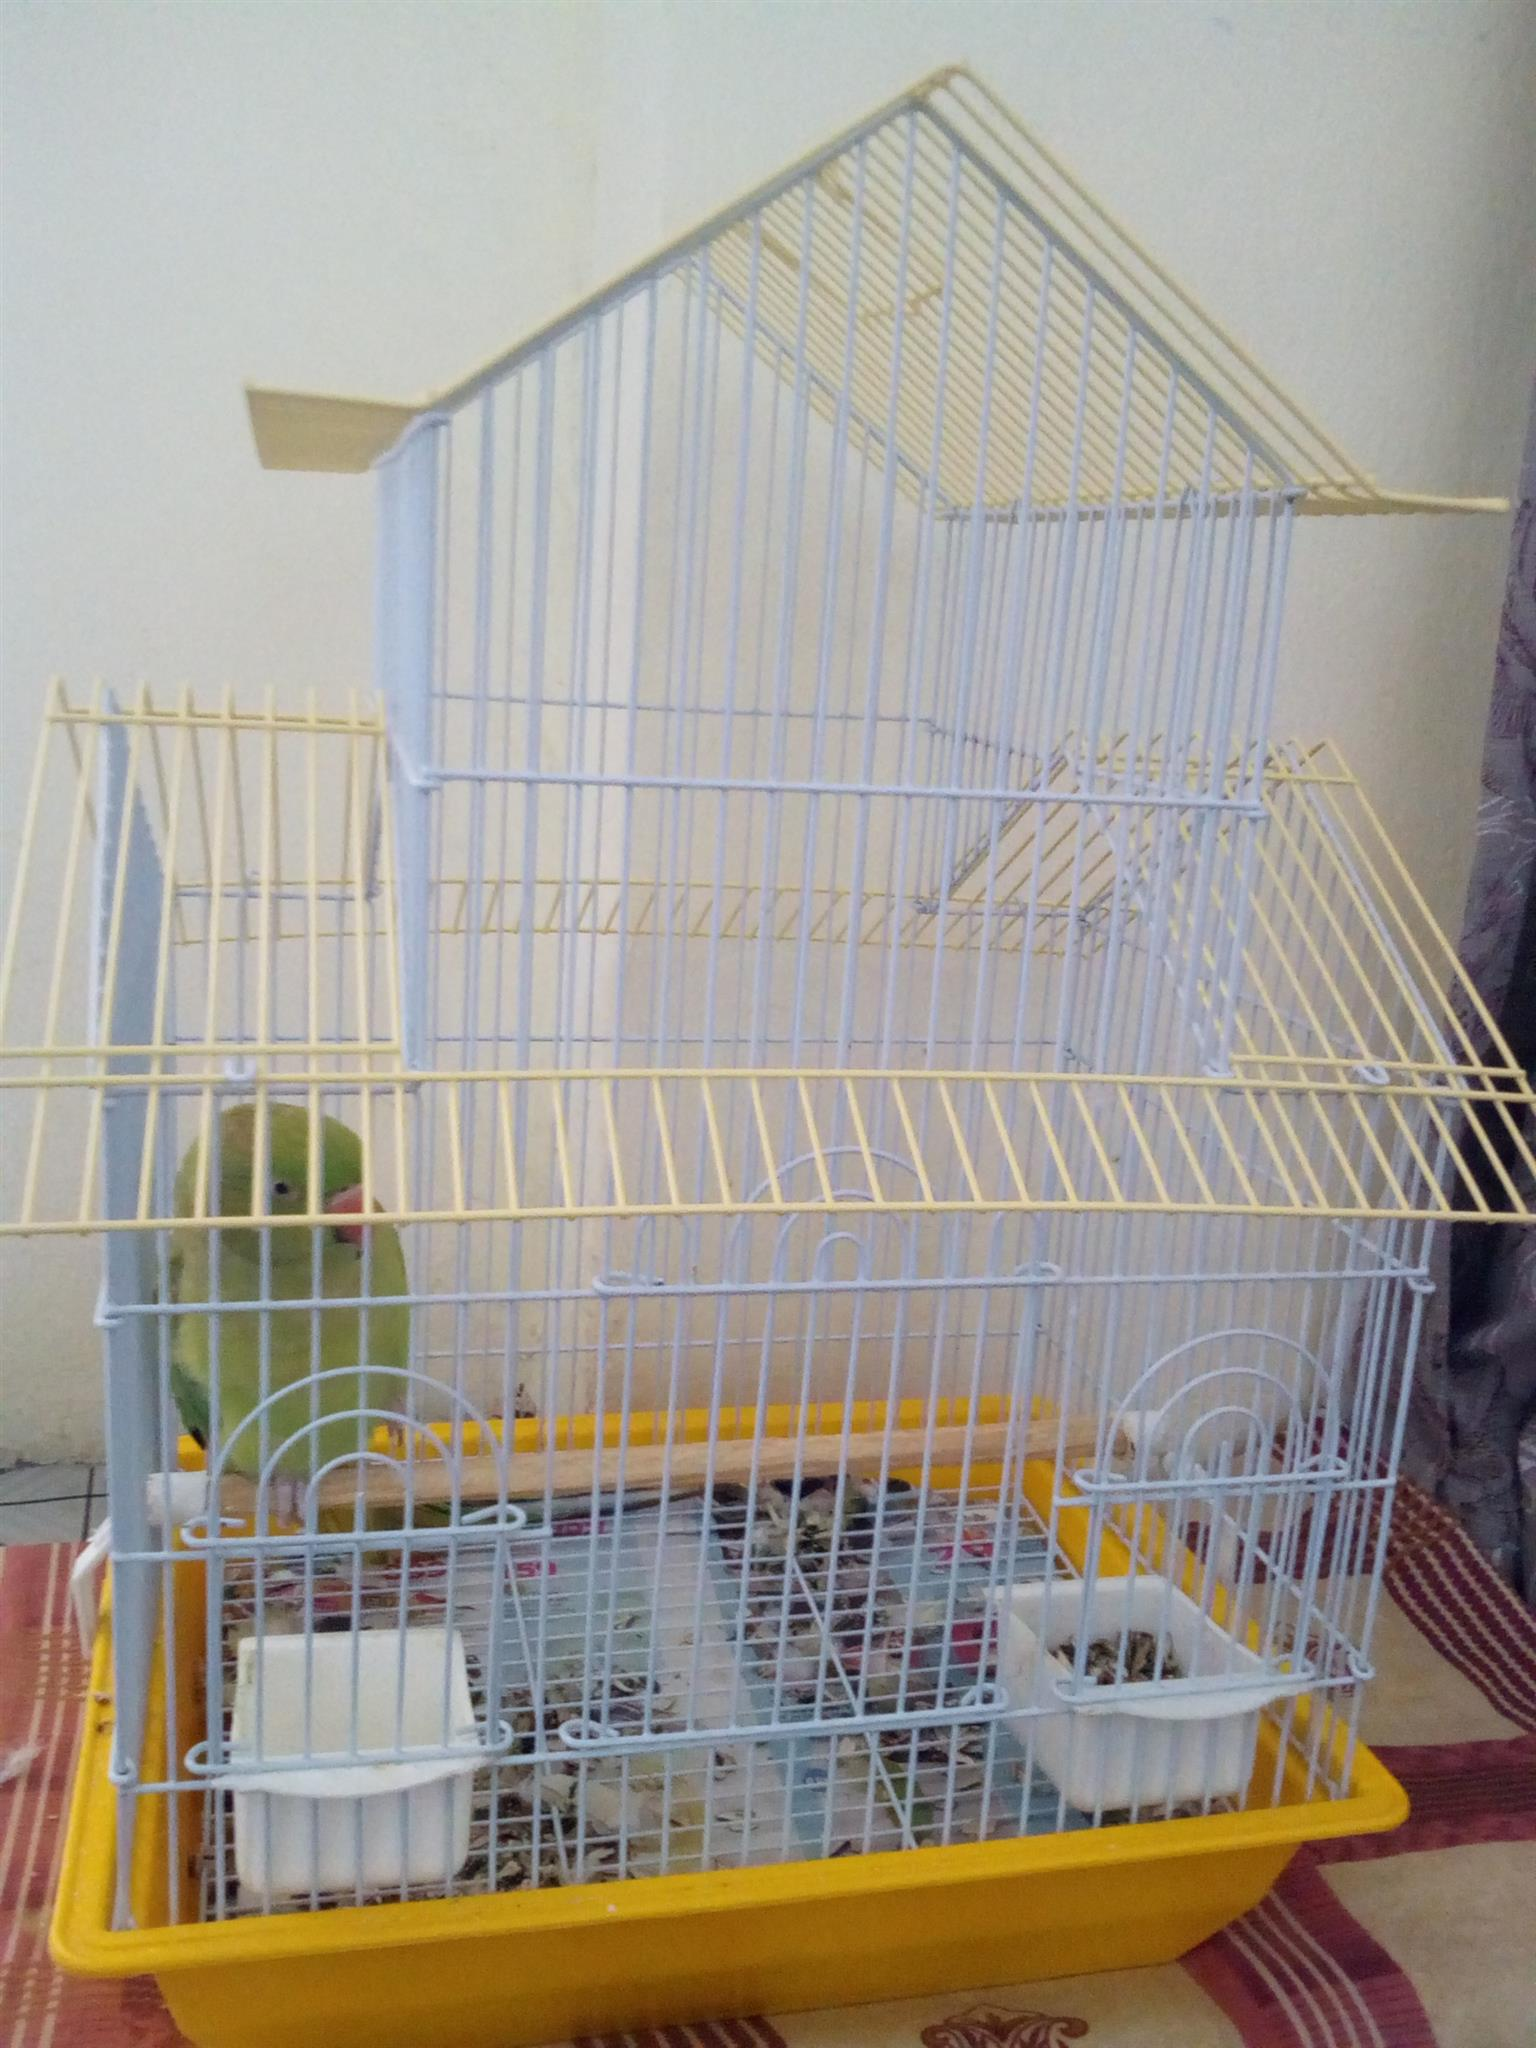 Bird cage for sale 150